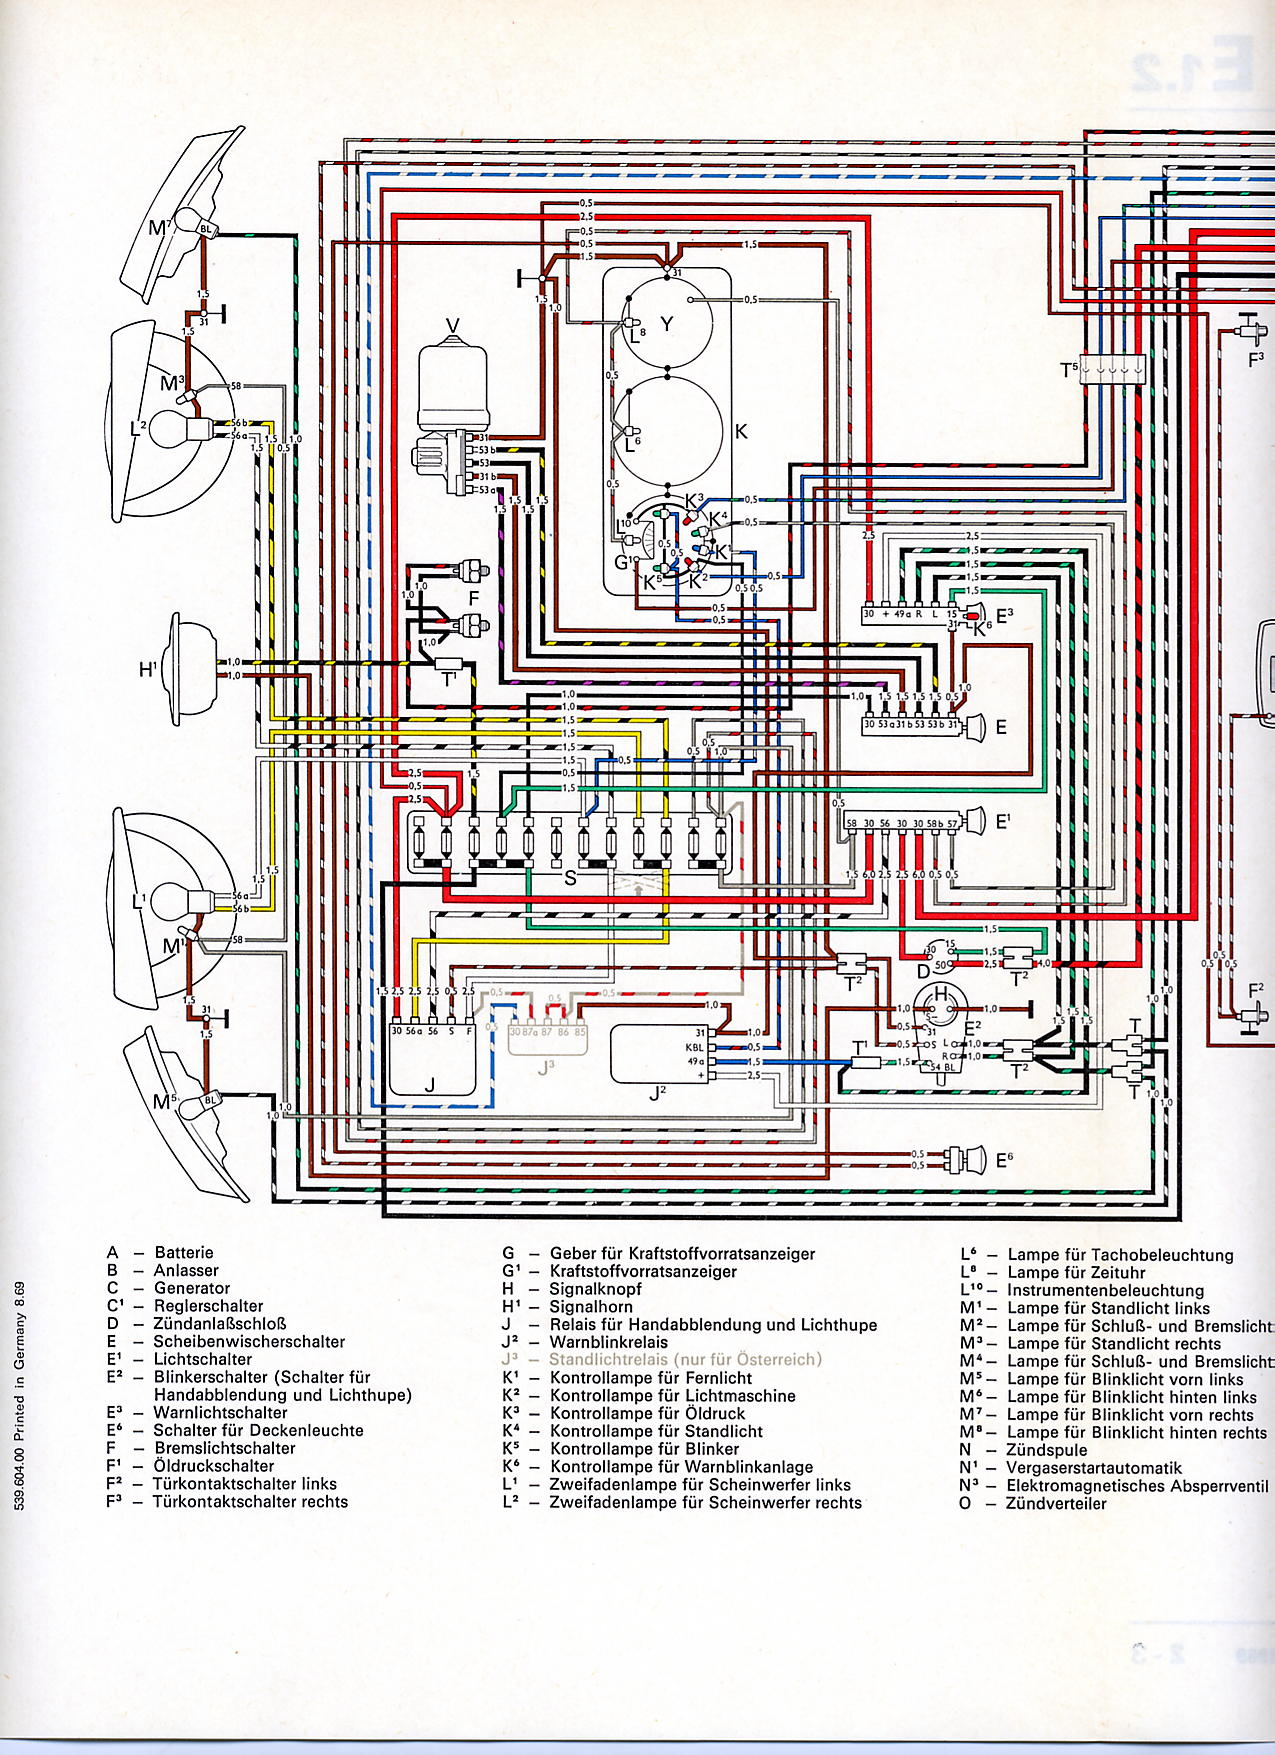 Vw Bus And Other Wiring Diagrams Ford 1700 Diagram De Y 1 2